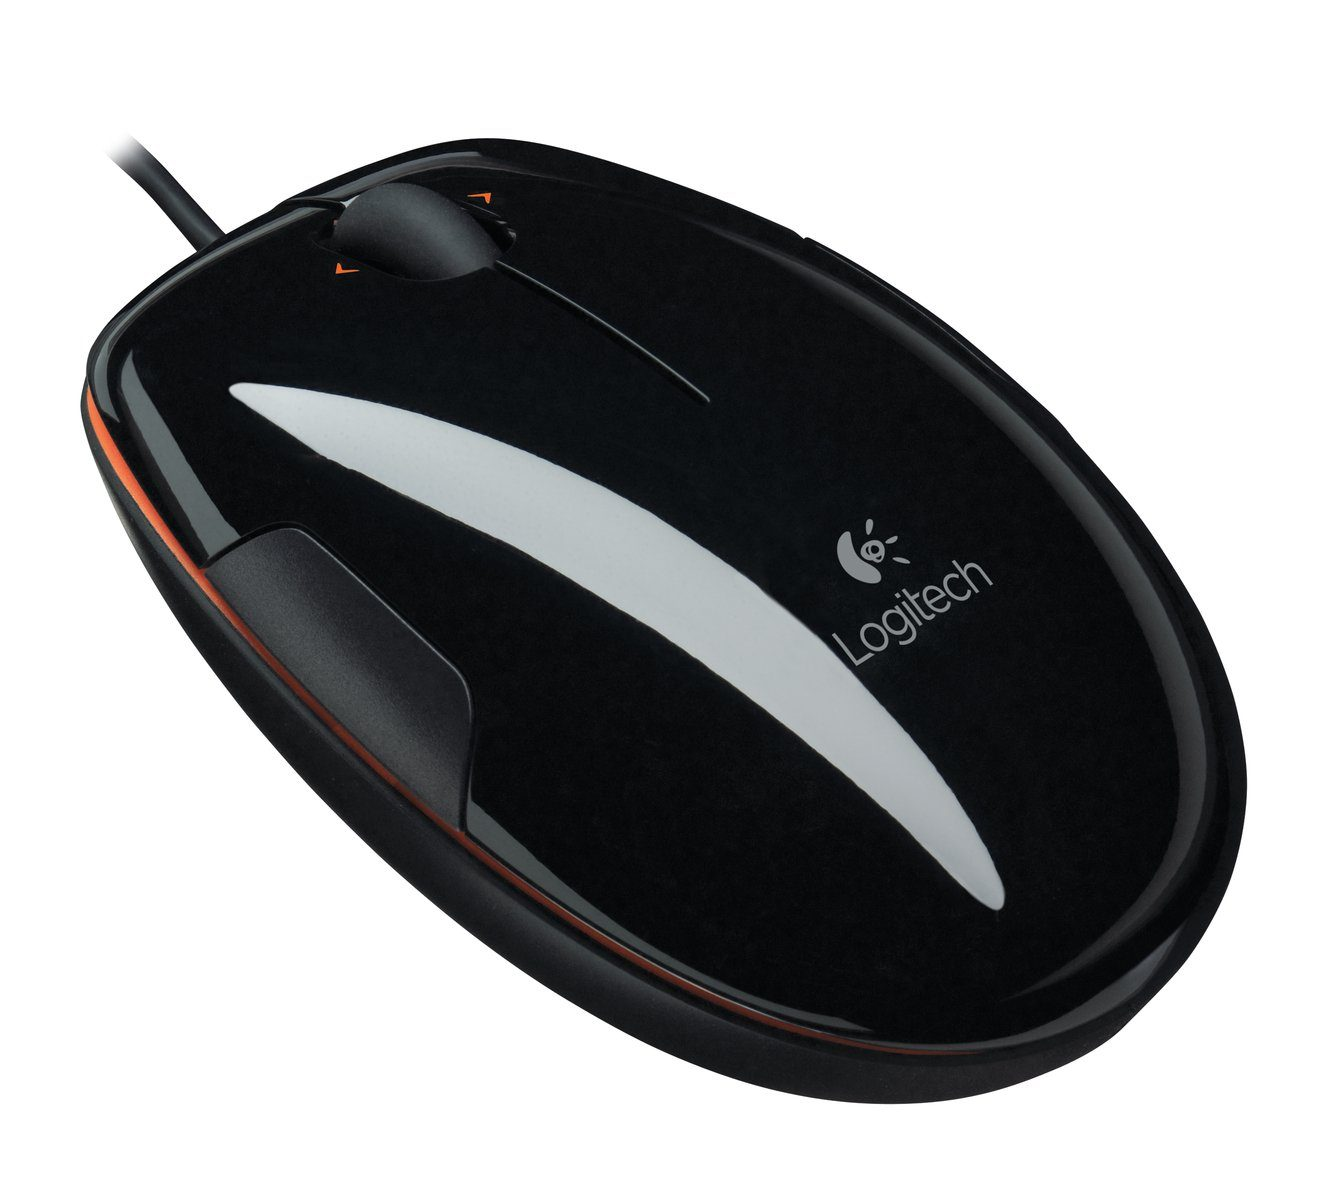 Logitech Maus »Laser Mouse M150 grape - 910-003753«